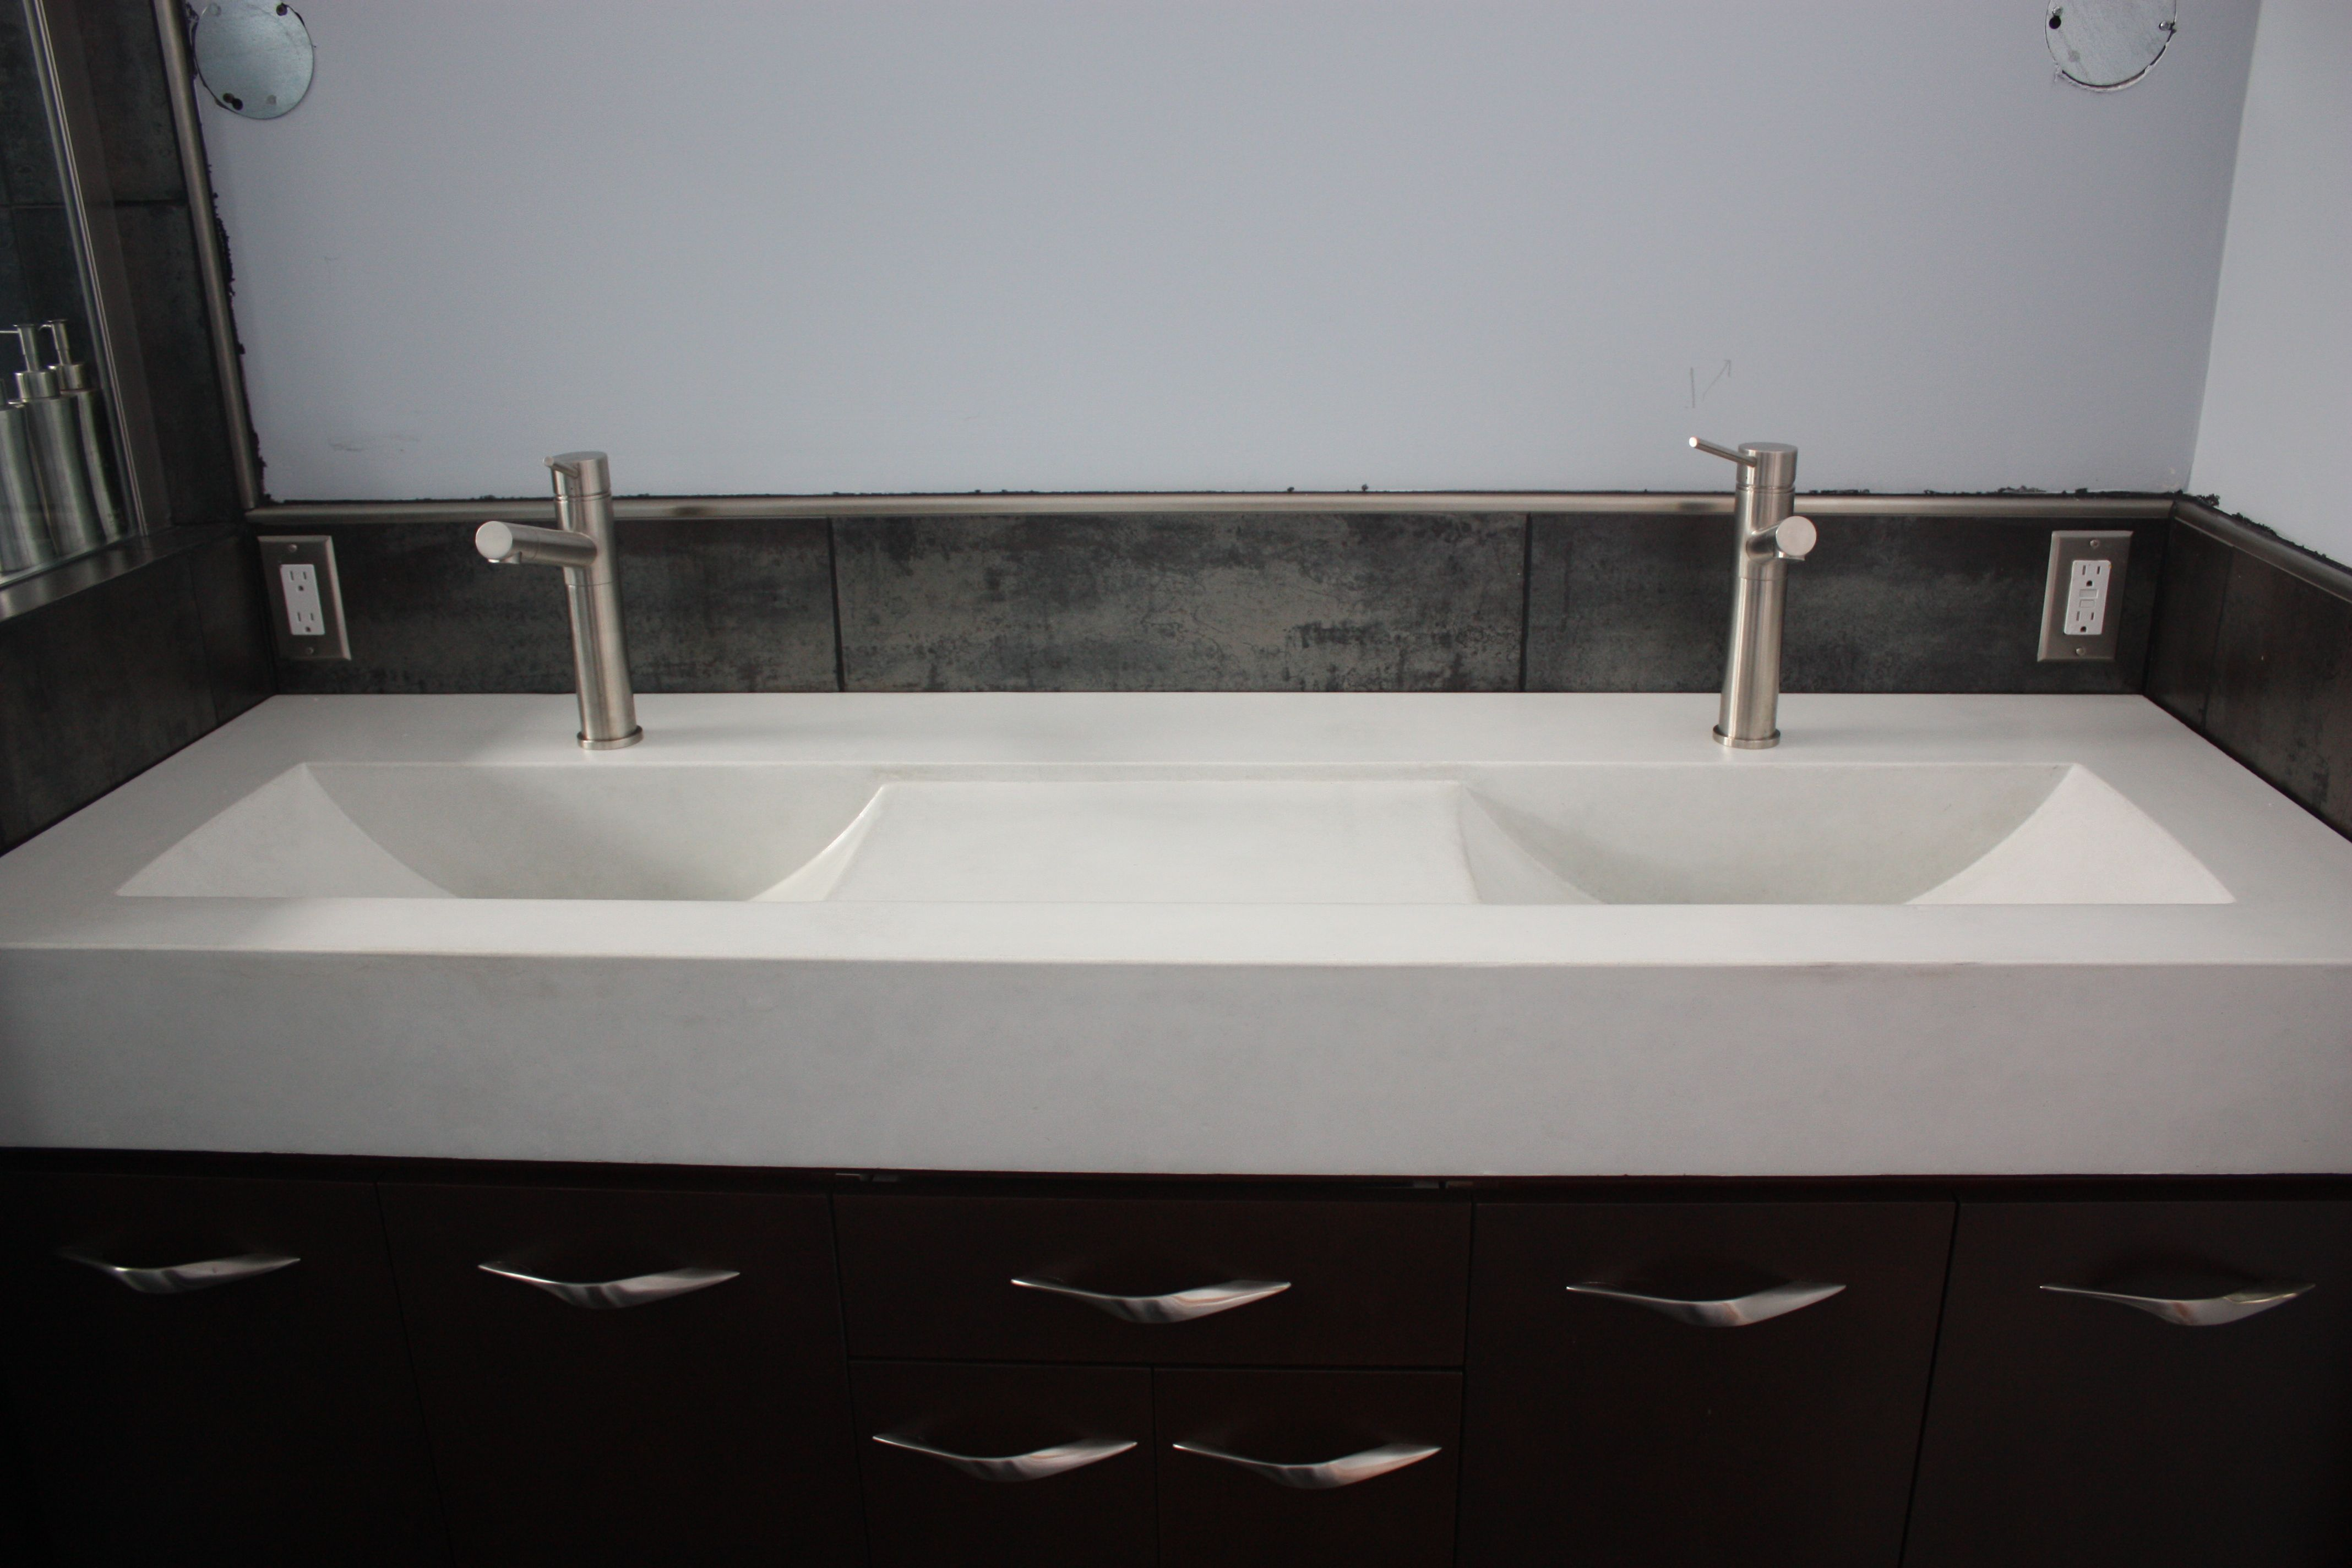 a double eclipse concrete vanity top. the recessed area between